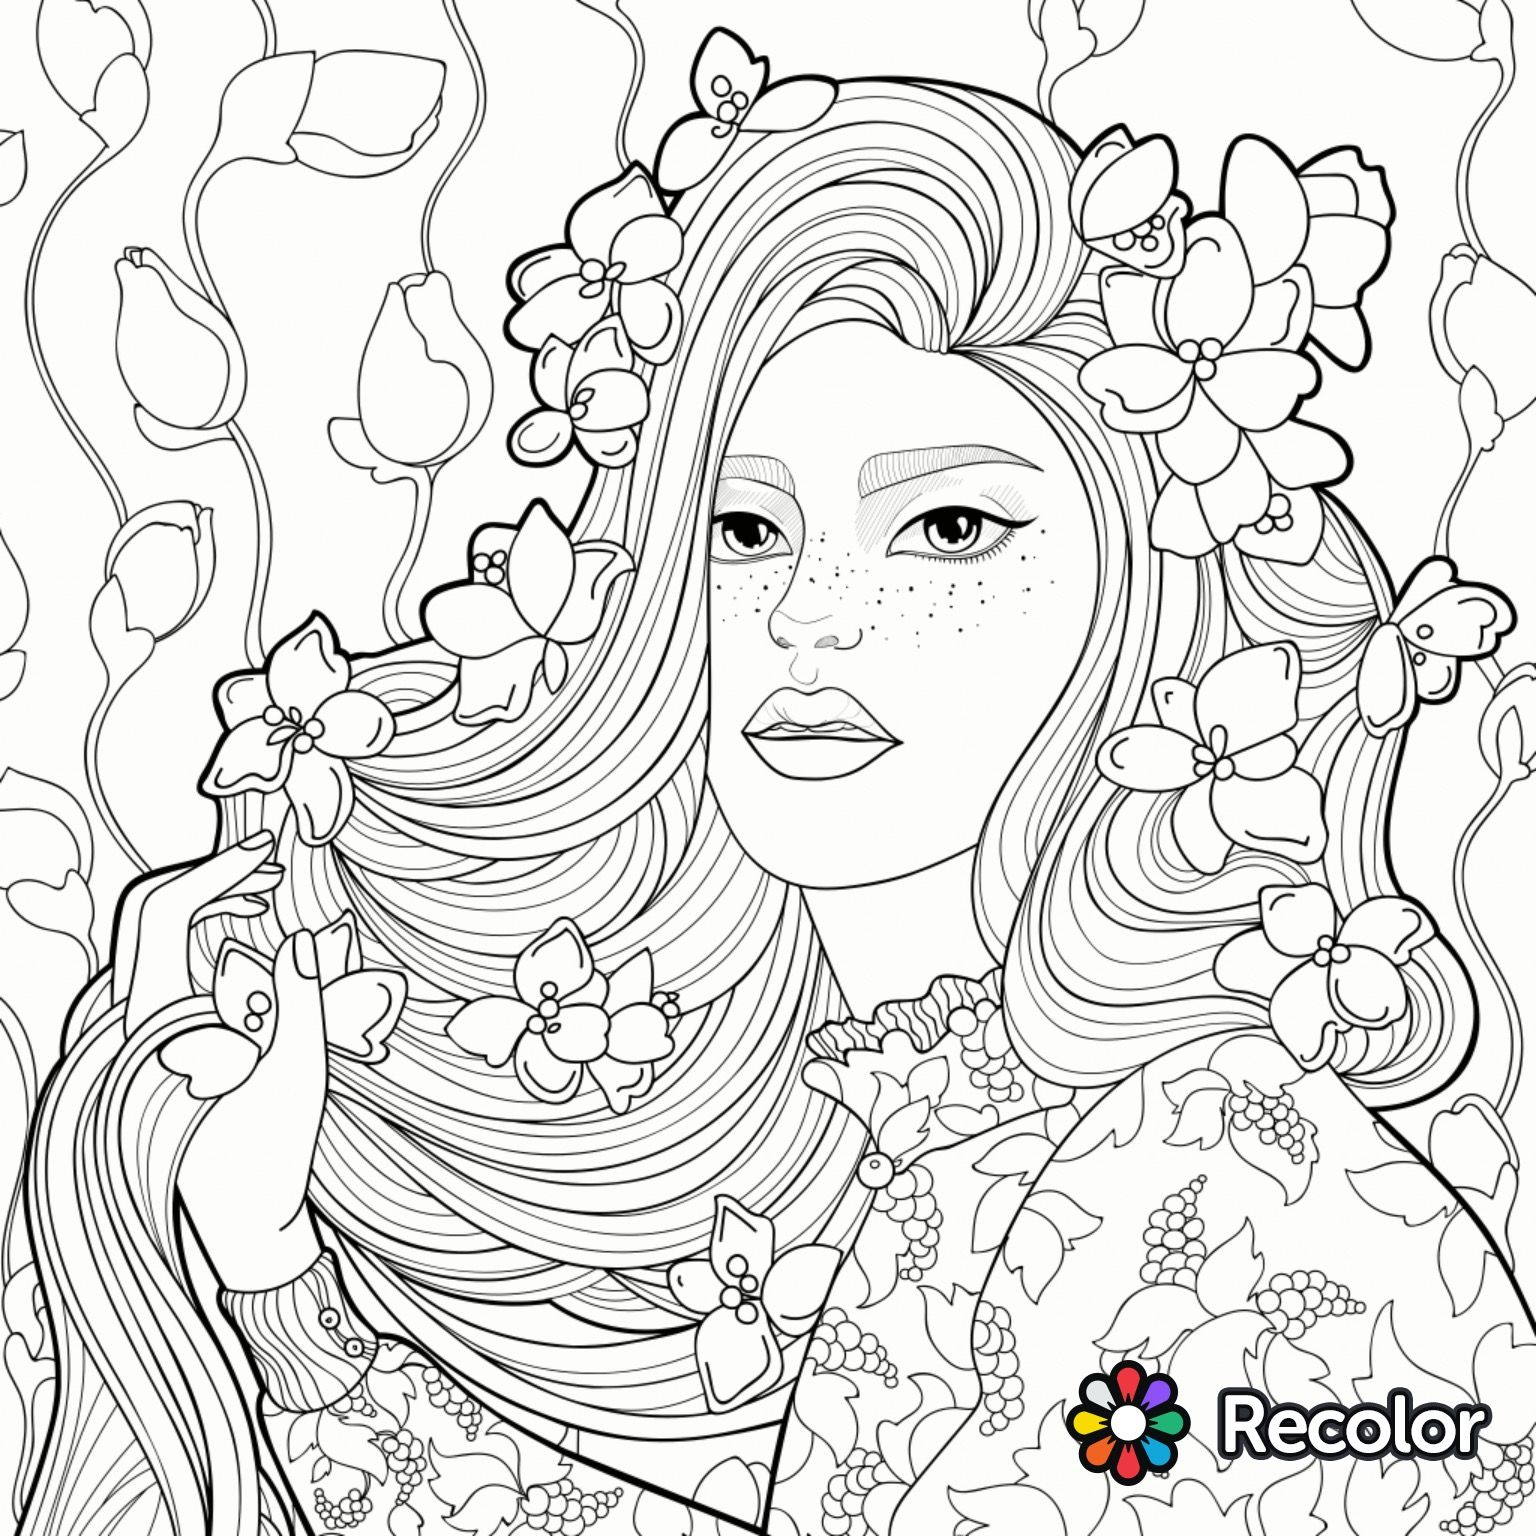 Coloring Pages : Pretty Girlg Pages Cute Anime To Print For ...